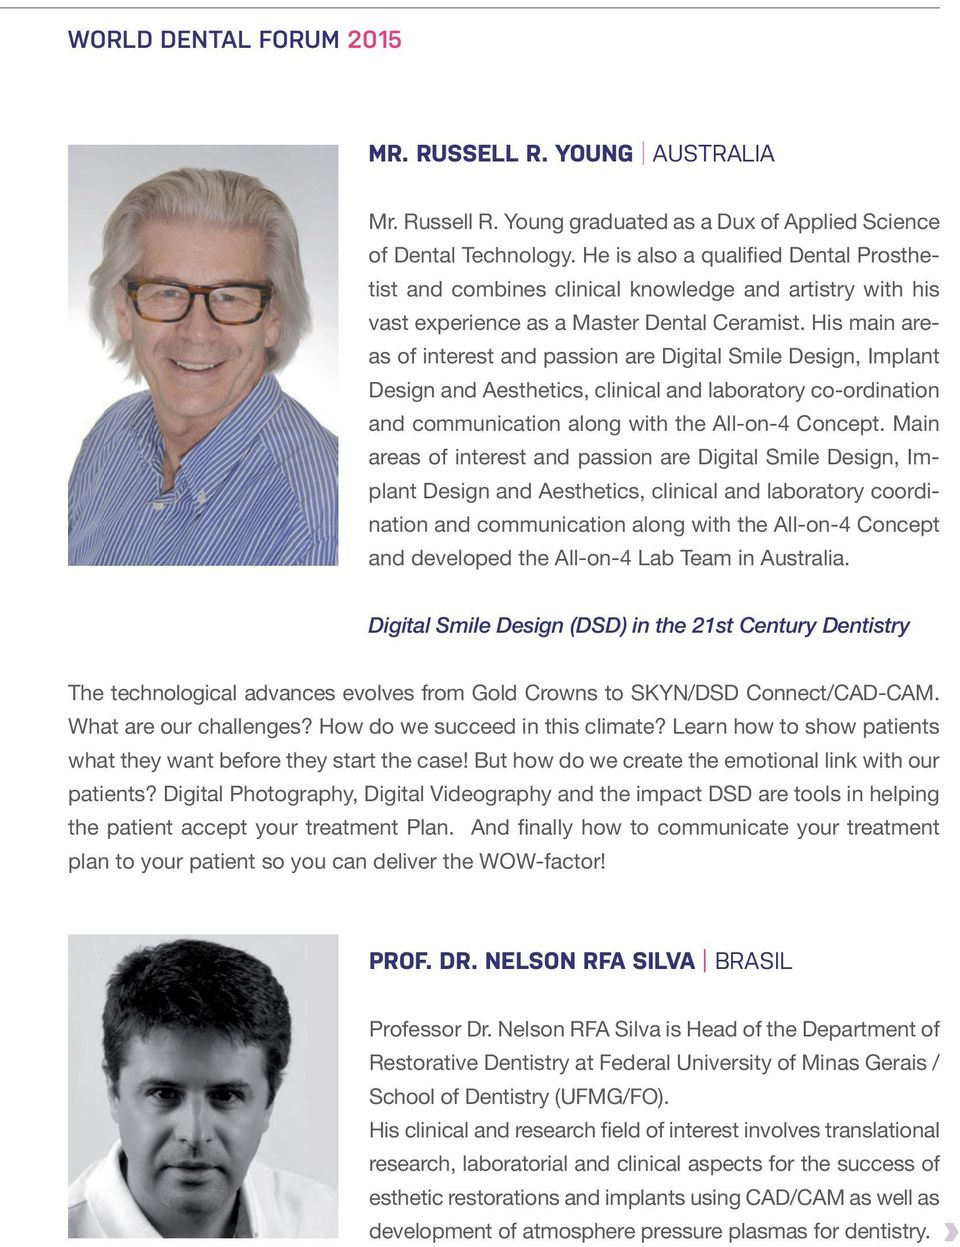 His main areas of interest and passion are Digital Smile Design, Implant Design and Aesthetics, clinical and laboratory co-ordination and communication along with the All-on-4 Concept.